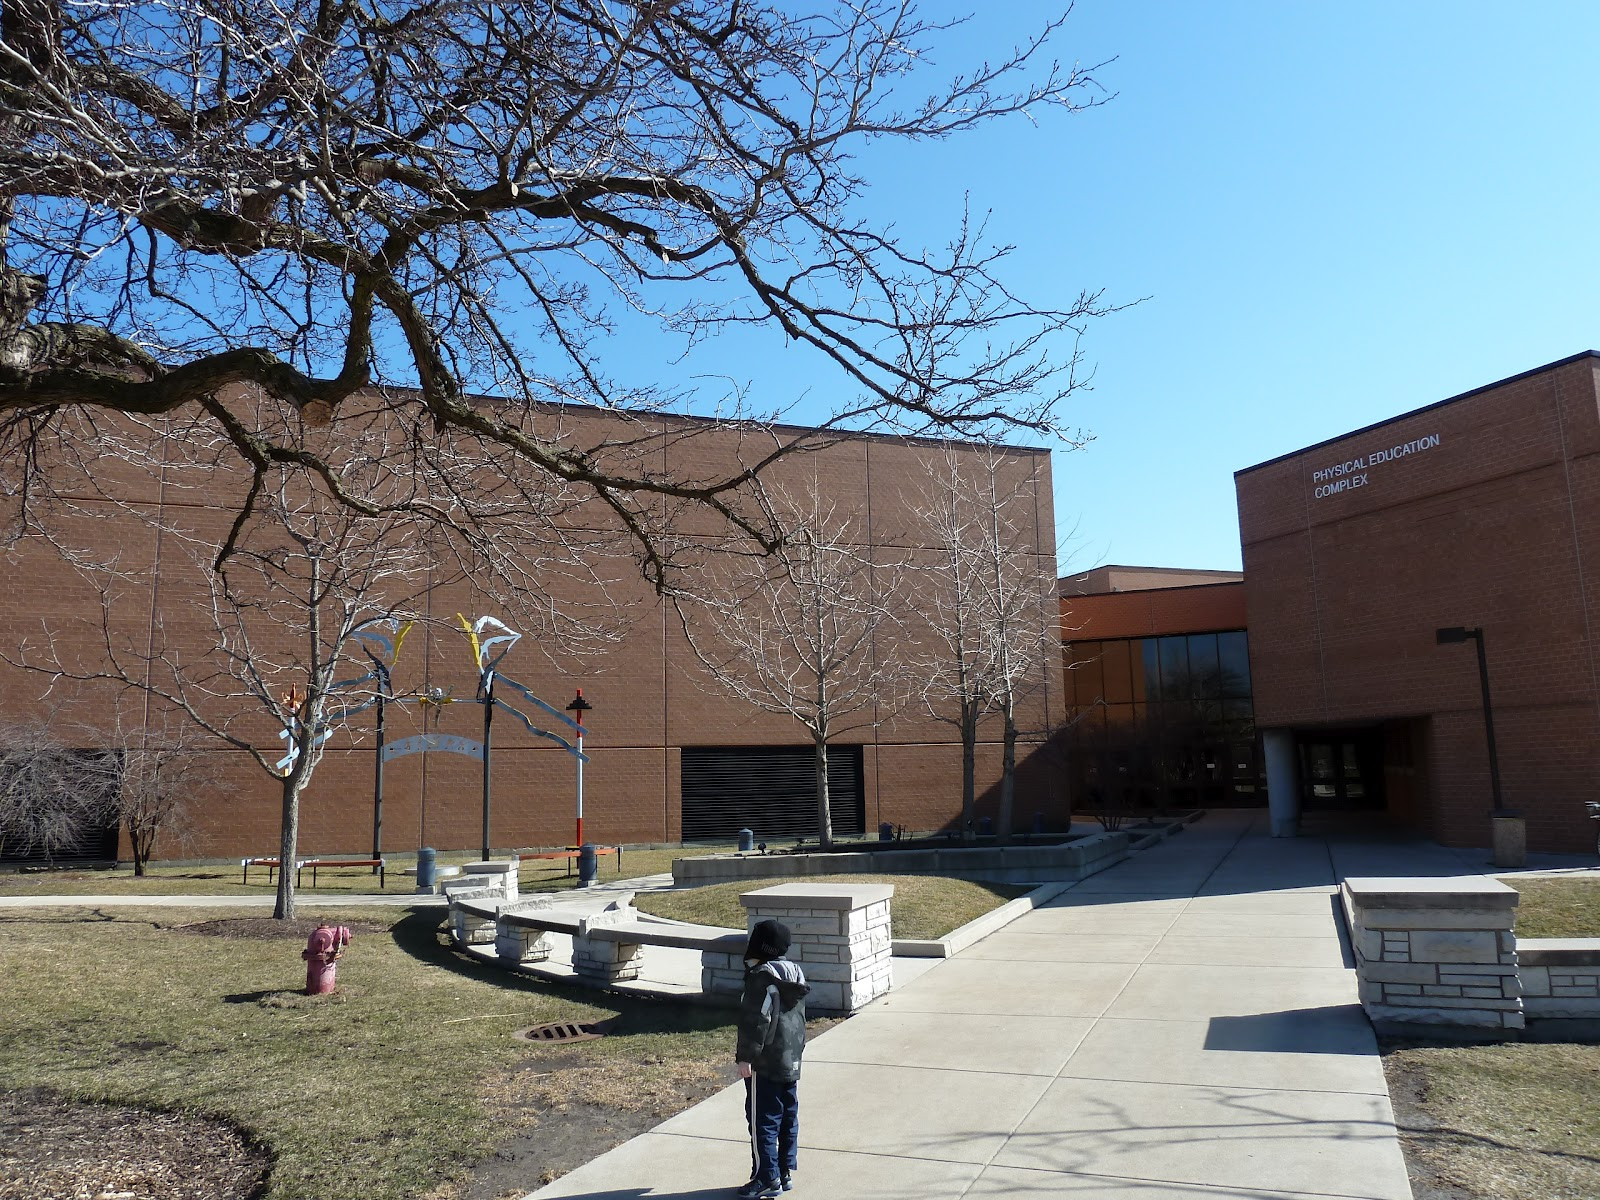 The chicago real estate local fitness kids swimming at - Northeastern university swimming pool ...